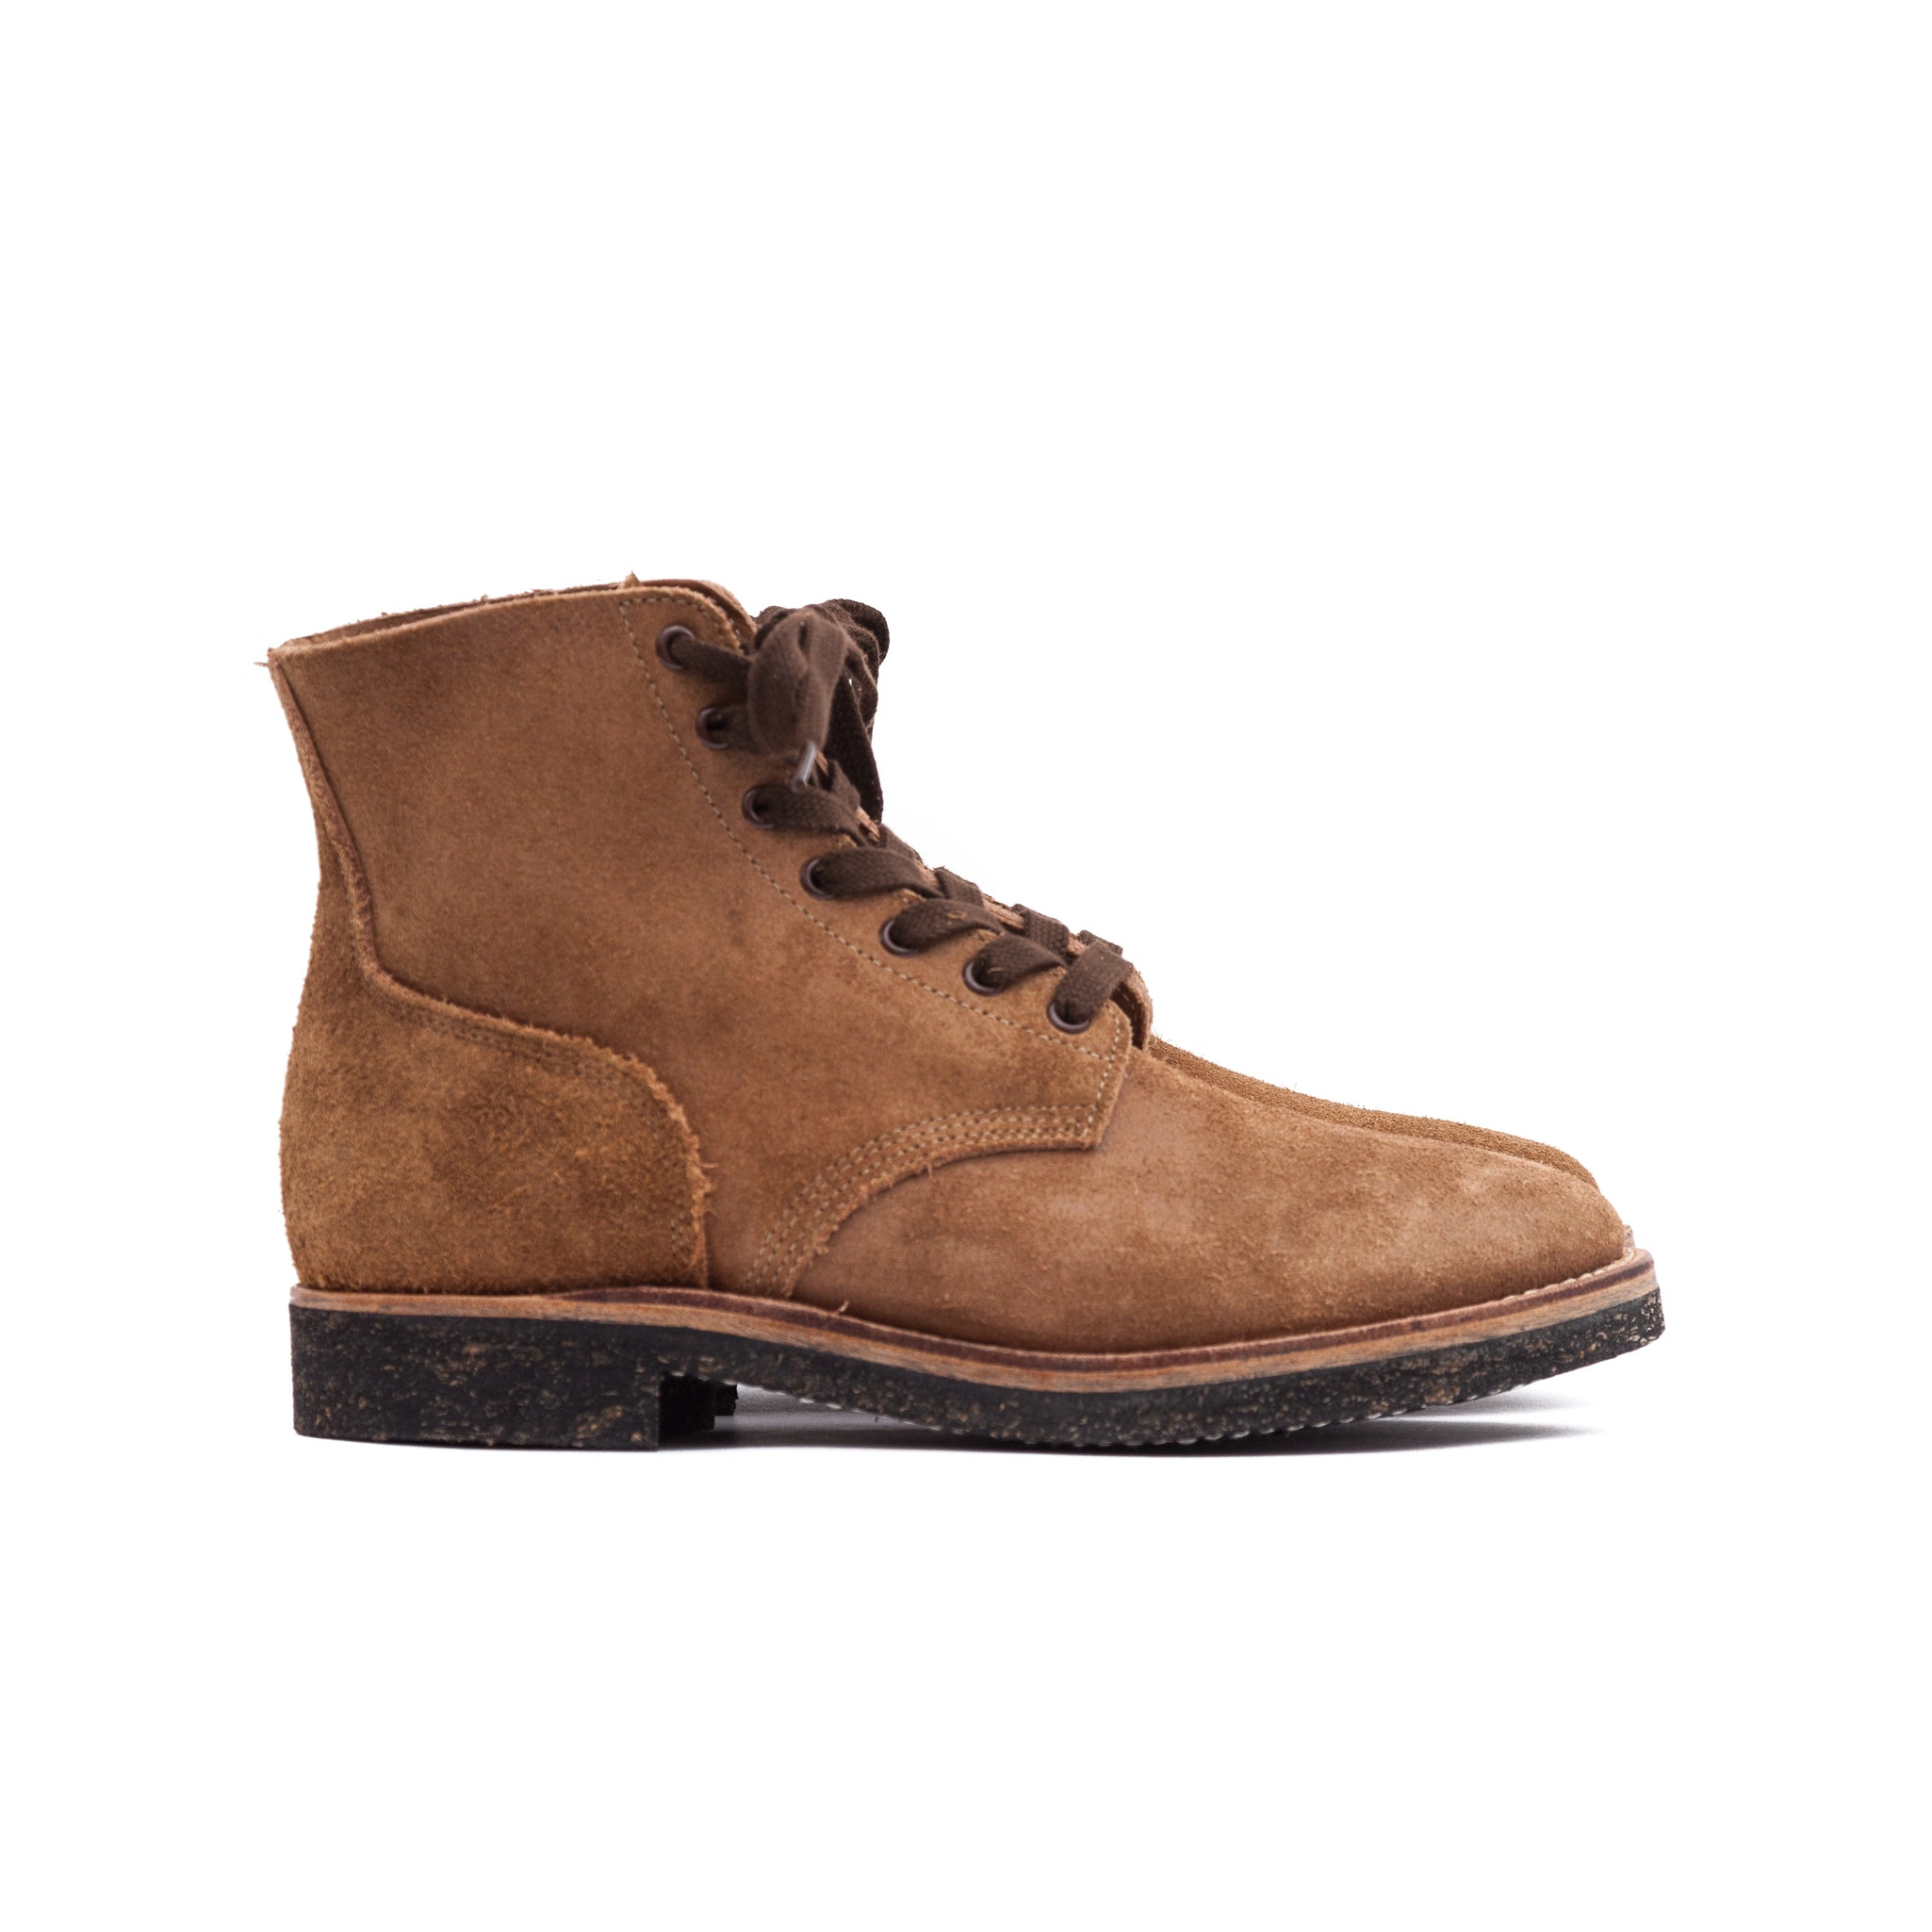 N-1 Field Shoes